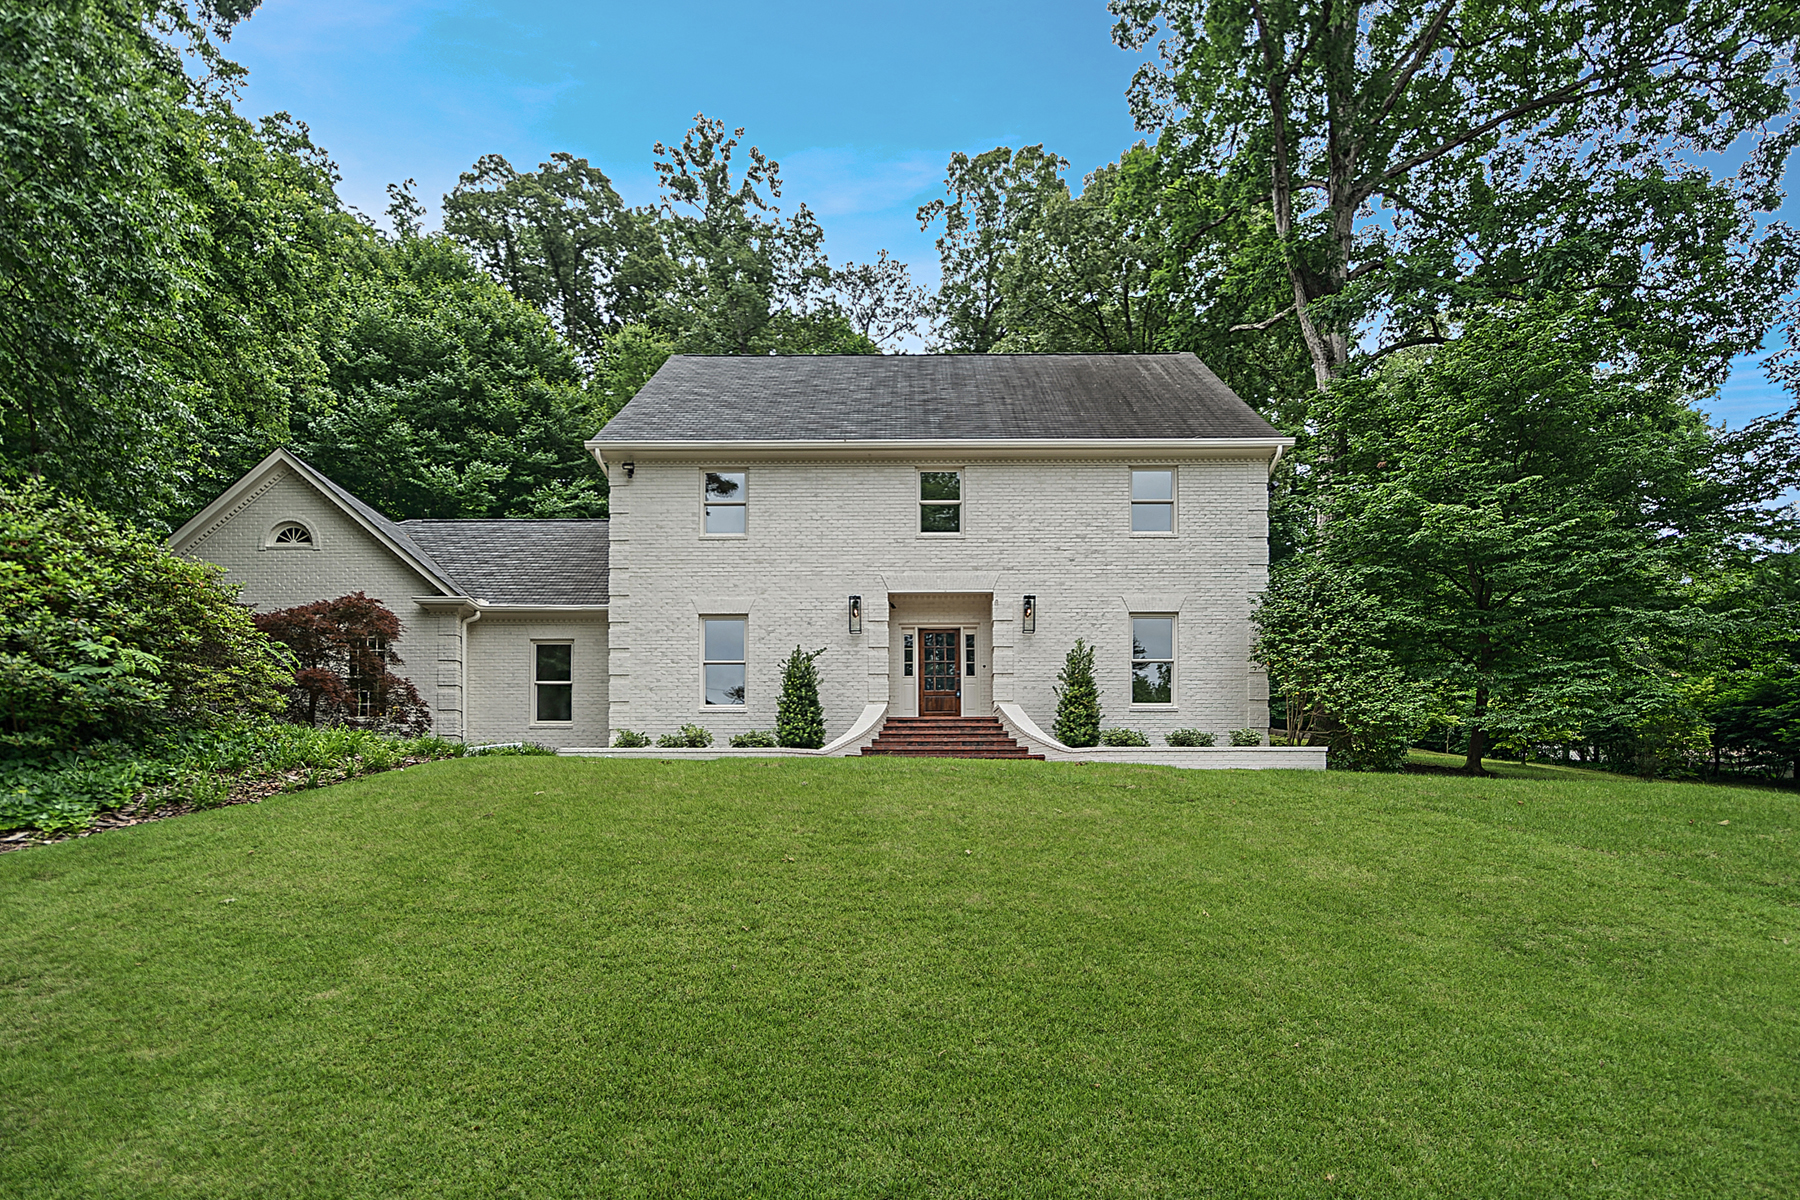 Single Family Home for Sale at Total Renovation In Buckhead Atop A Private 1.2+/- Acre Lot 1210 Regency Road NW Atlanta, Georgia 30327 United States